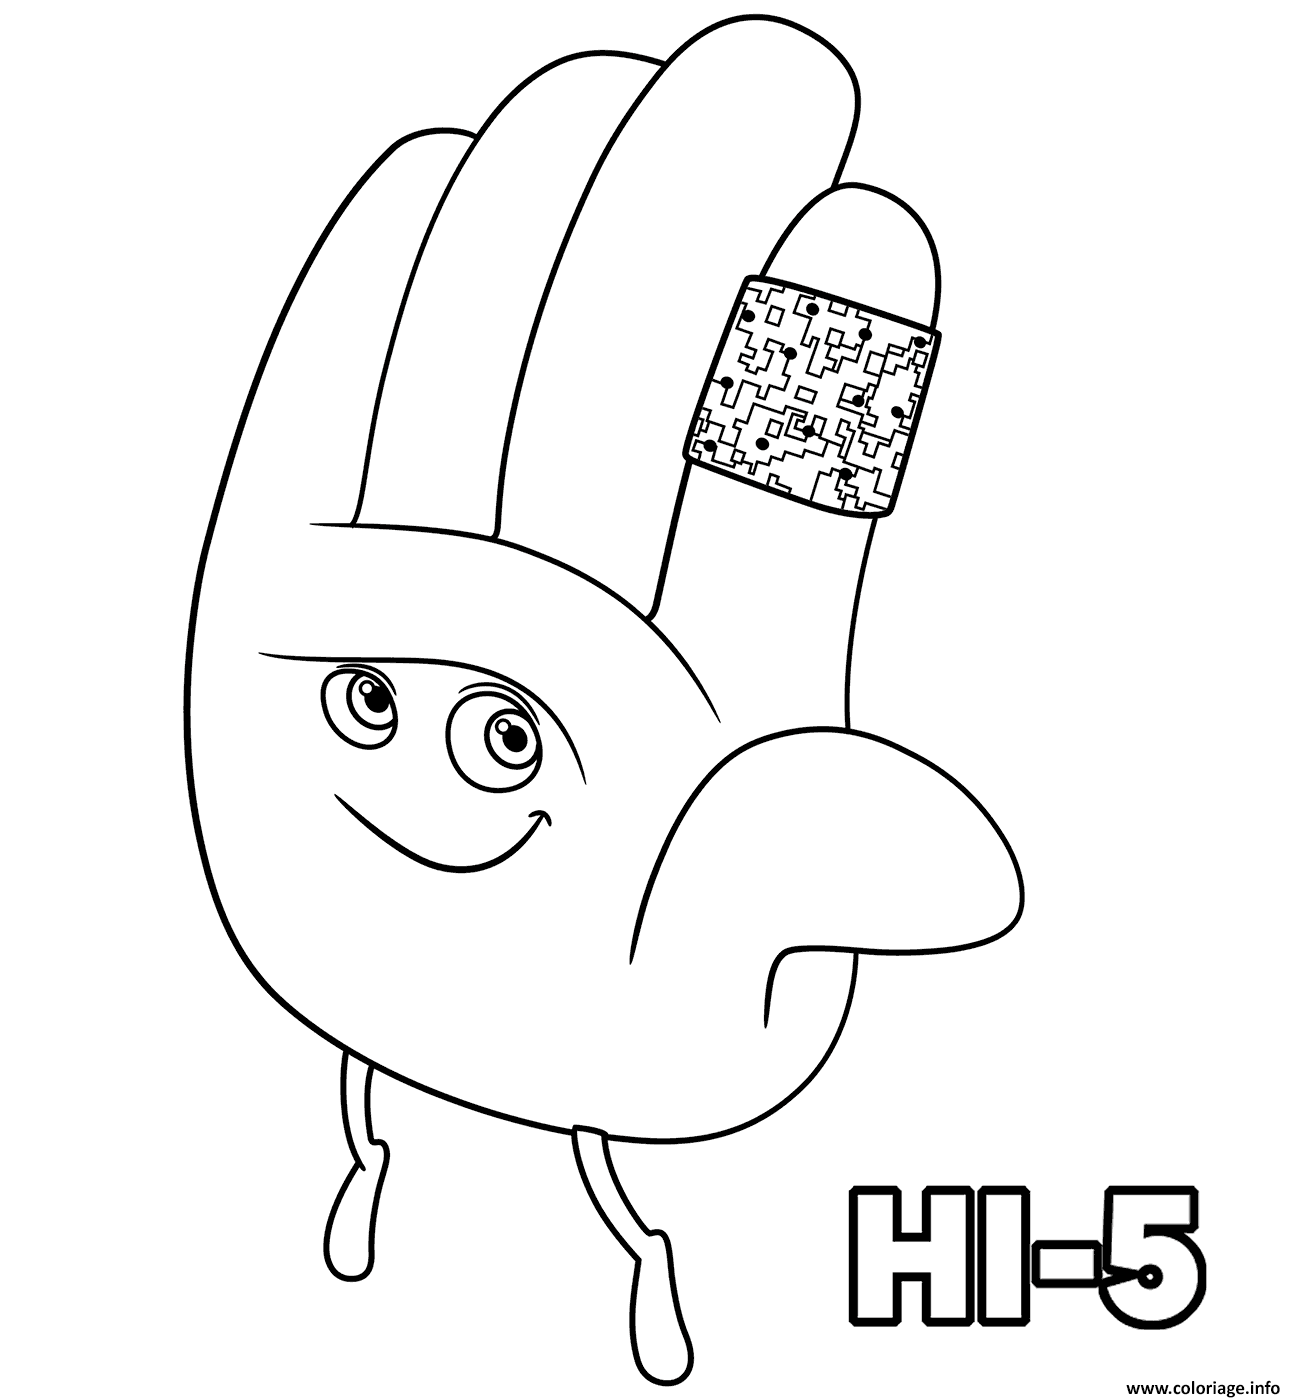 Coloriage Hi Five The Emoji Monde Secret Des Emojis Dessin